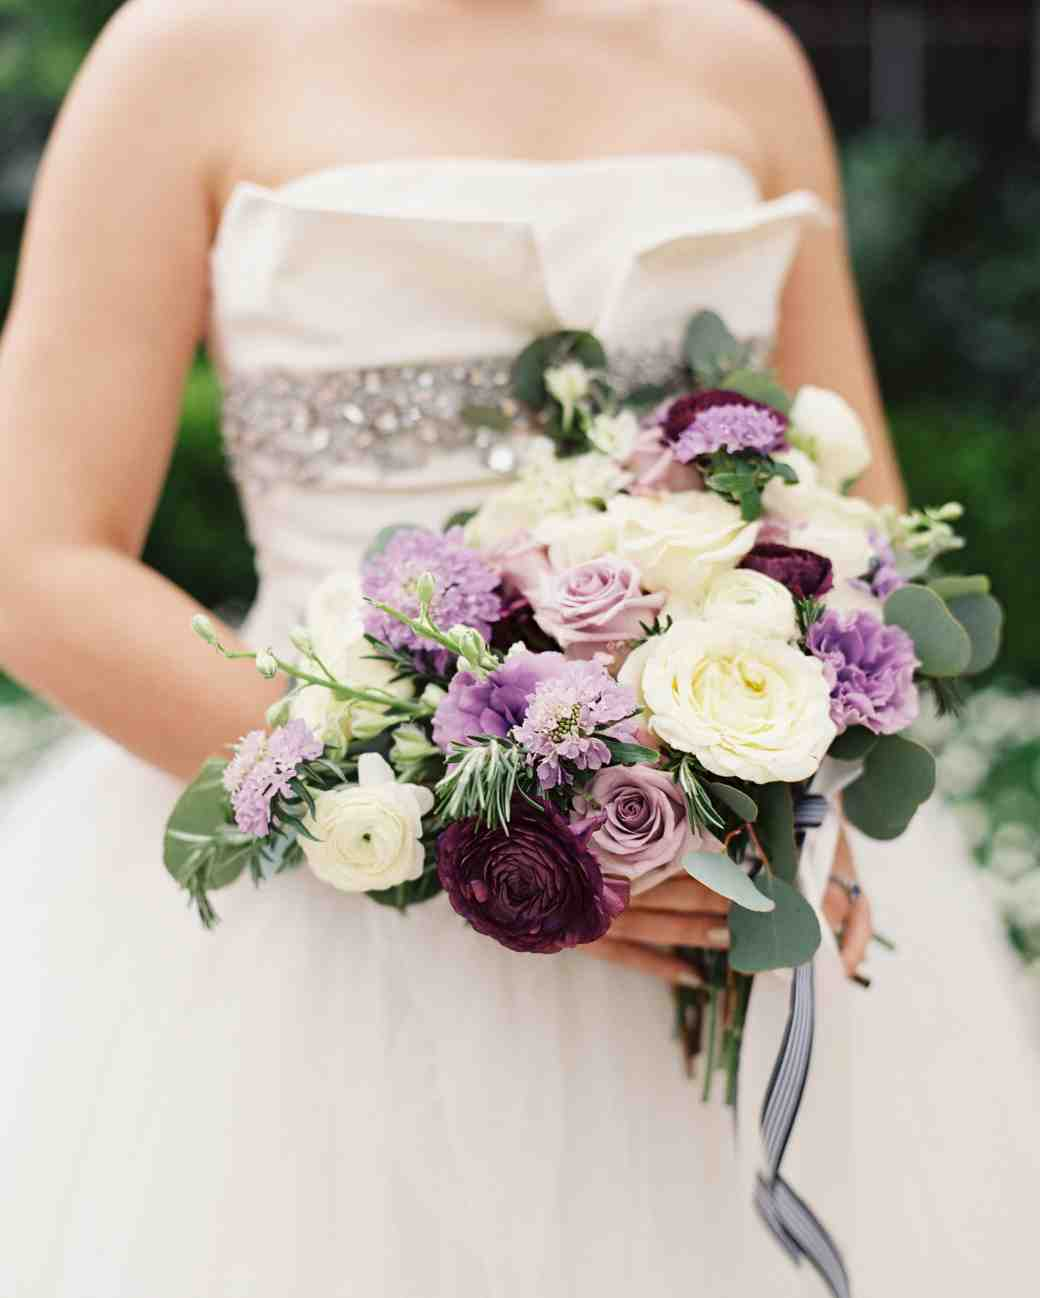 Garden Roses Lisianthus Scabiosa Ranunculus And Larkspur With Rosemary And Eucalyptus Wedding Bouquet Creative Ads And More